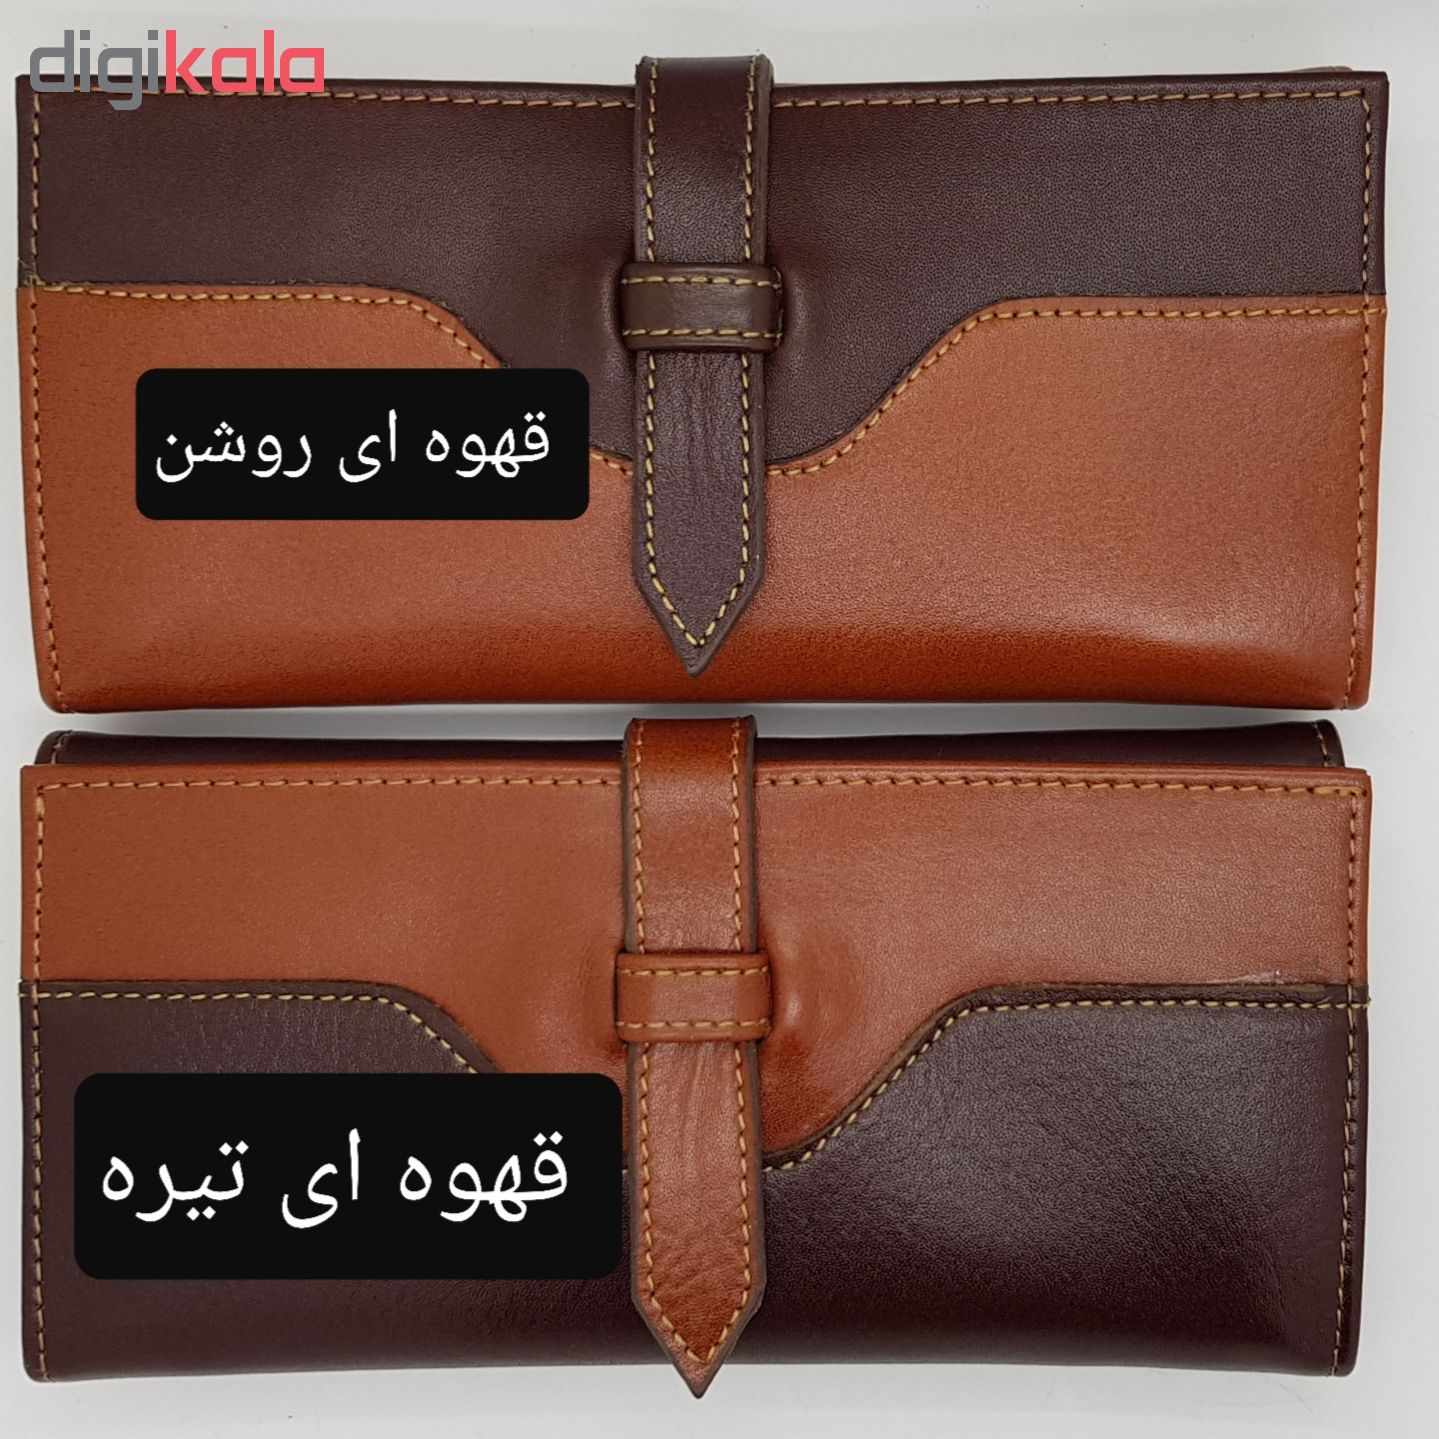 DIYAKO natural leather wallet, Model niloofar